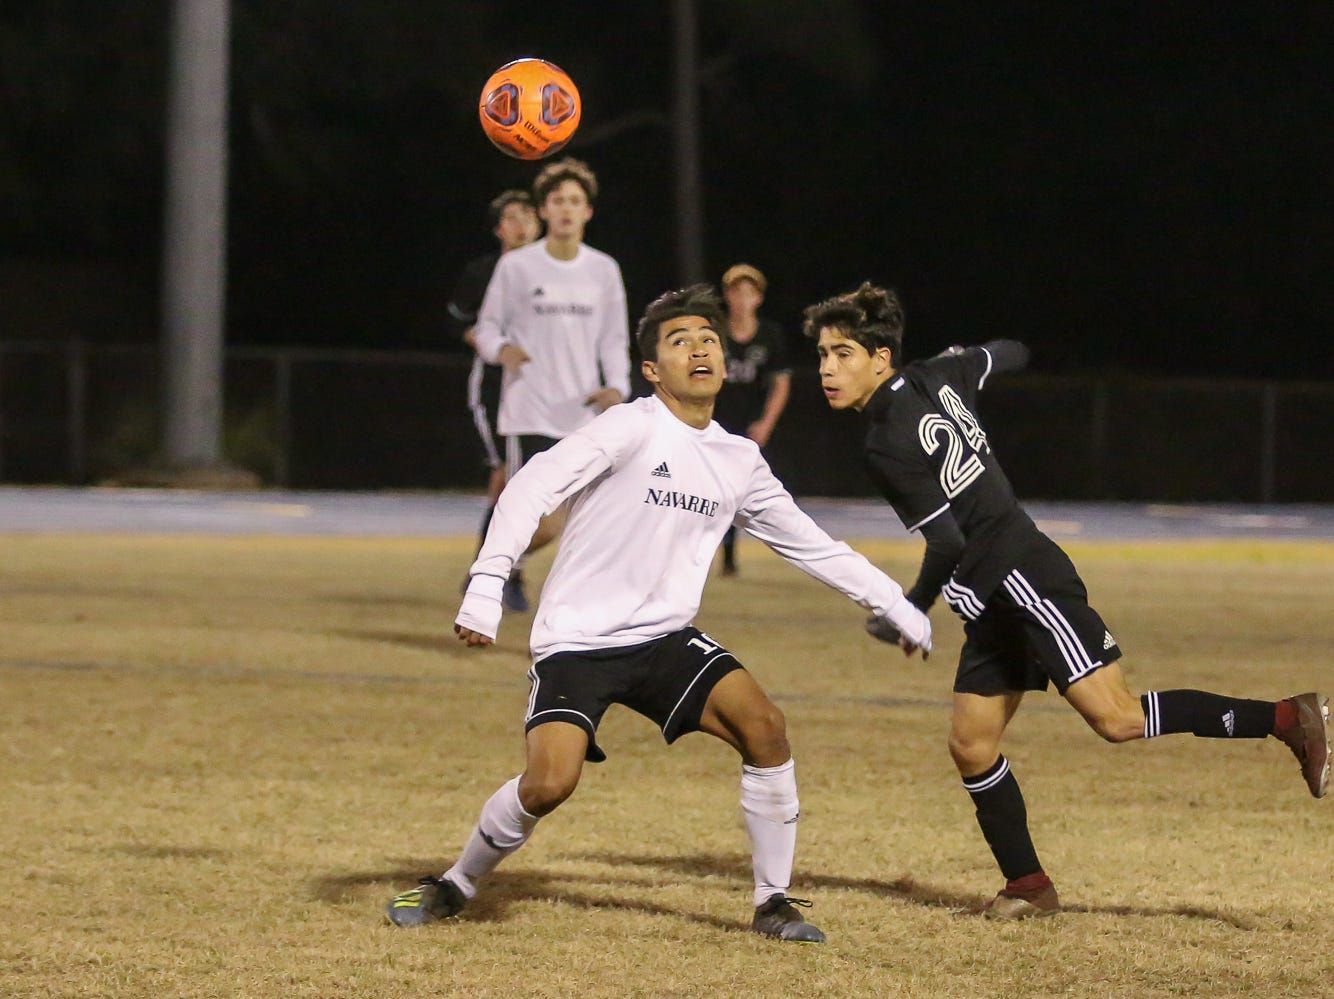 Navarre's Joel Recinos (10) and Niceville's James Hawver (24) chase after the ball in the District 1-4A championship game at Washington High School on Friday, February 1, 2019. For the second straight year, Niceville shut-out Navarre to win the championship. Last year, the score was 6-0 and this year it was 7-0.